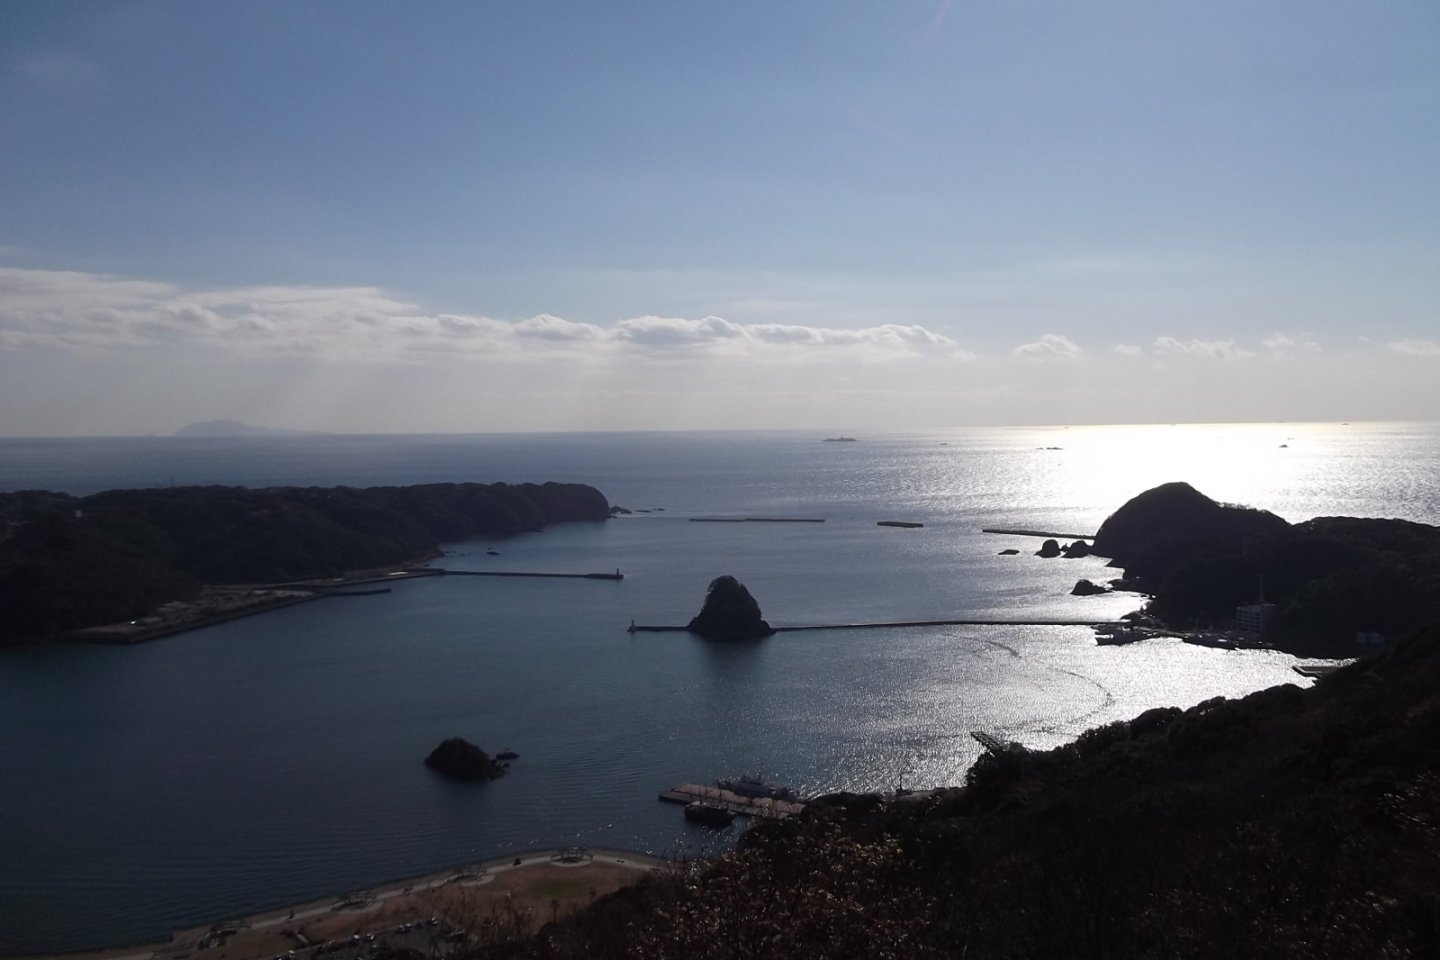 The view from Mount Nesugata above Shimoda